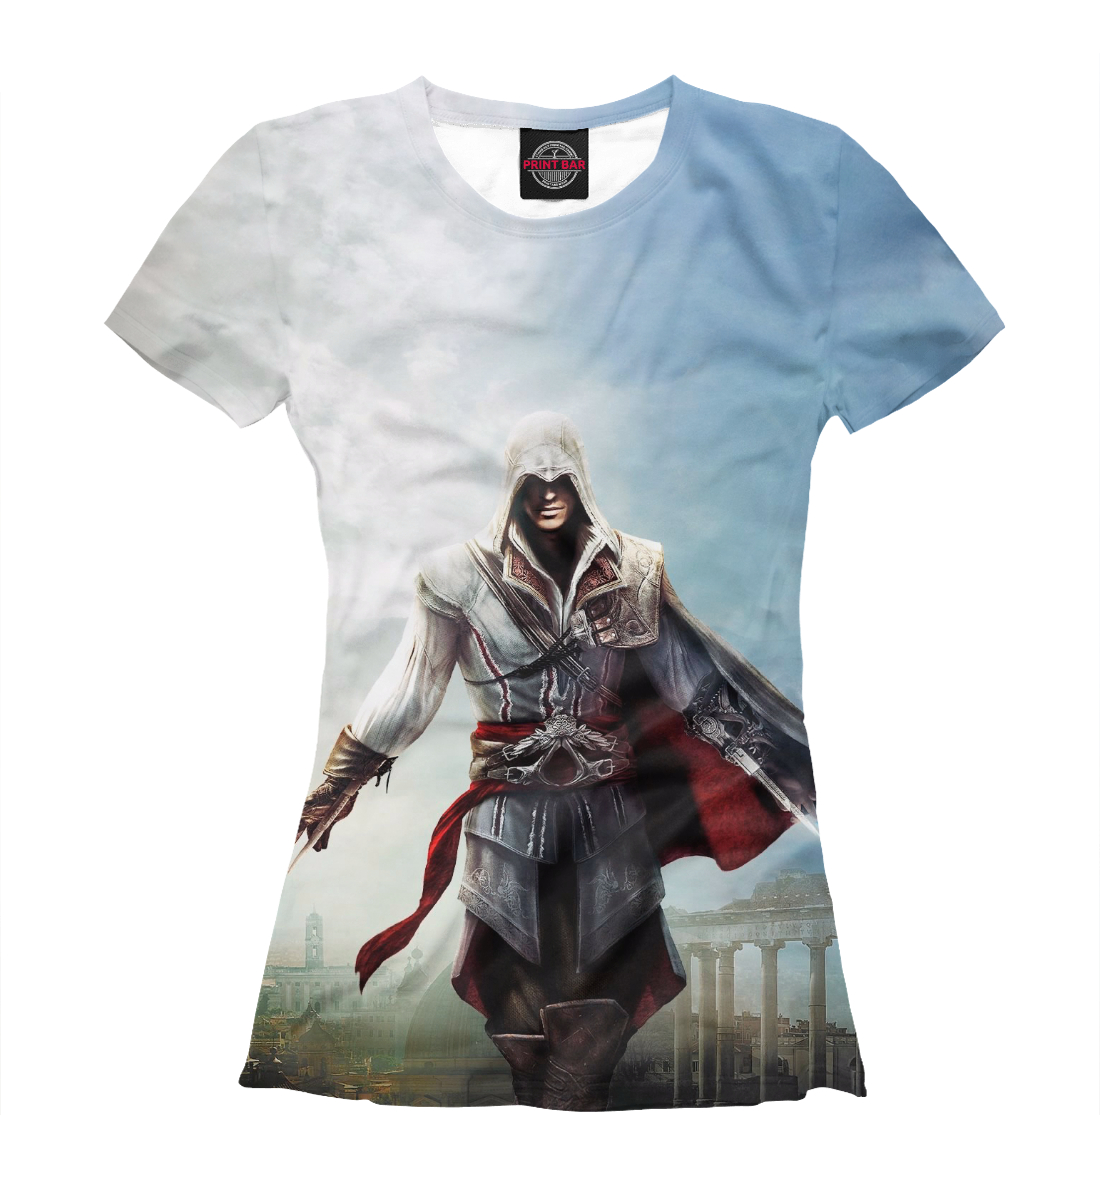 Купить Assassin's Creed Ezio Collection, Printbar, Футболки, RPG-324153-fut-1